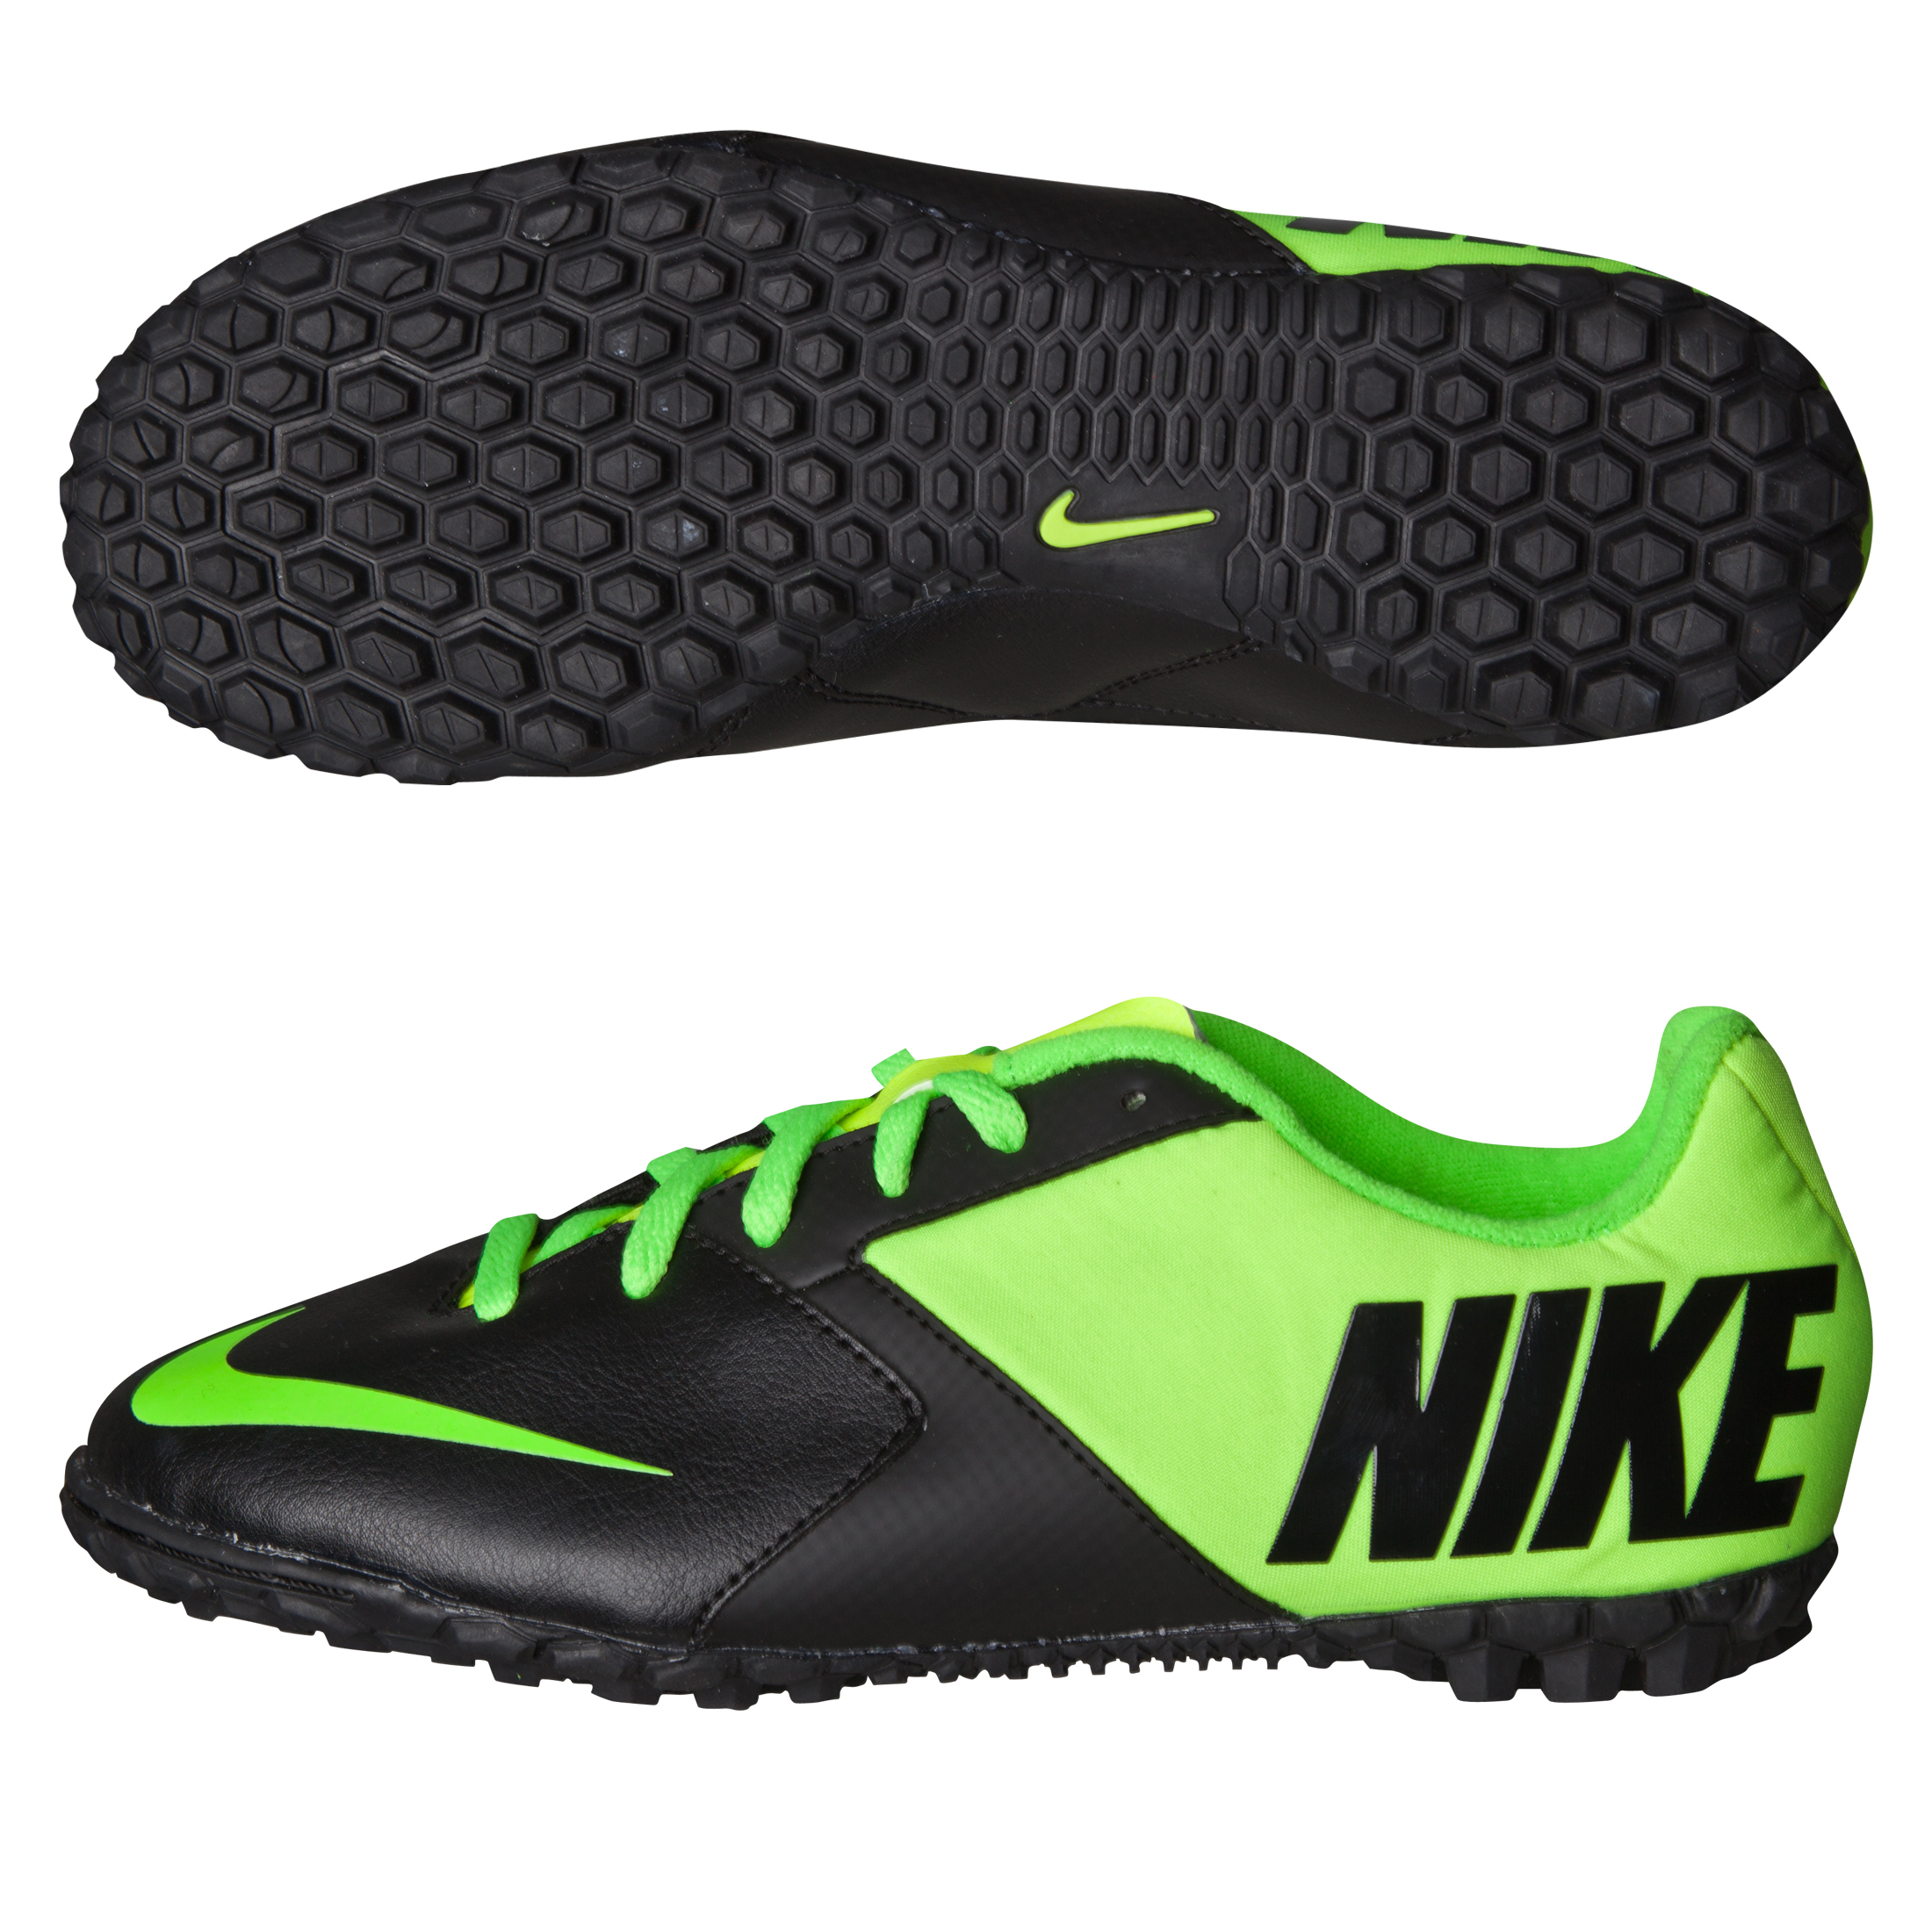 Nike Bomba II Trainers - Kids -Black/Electric Green/Volt Black